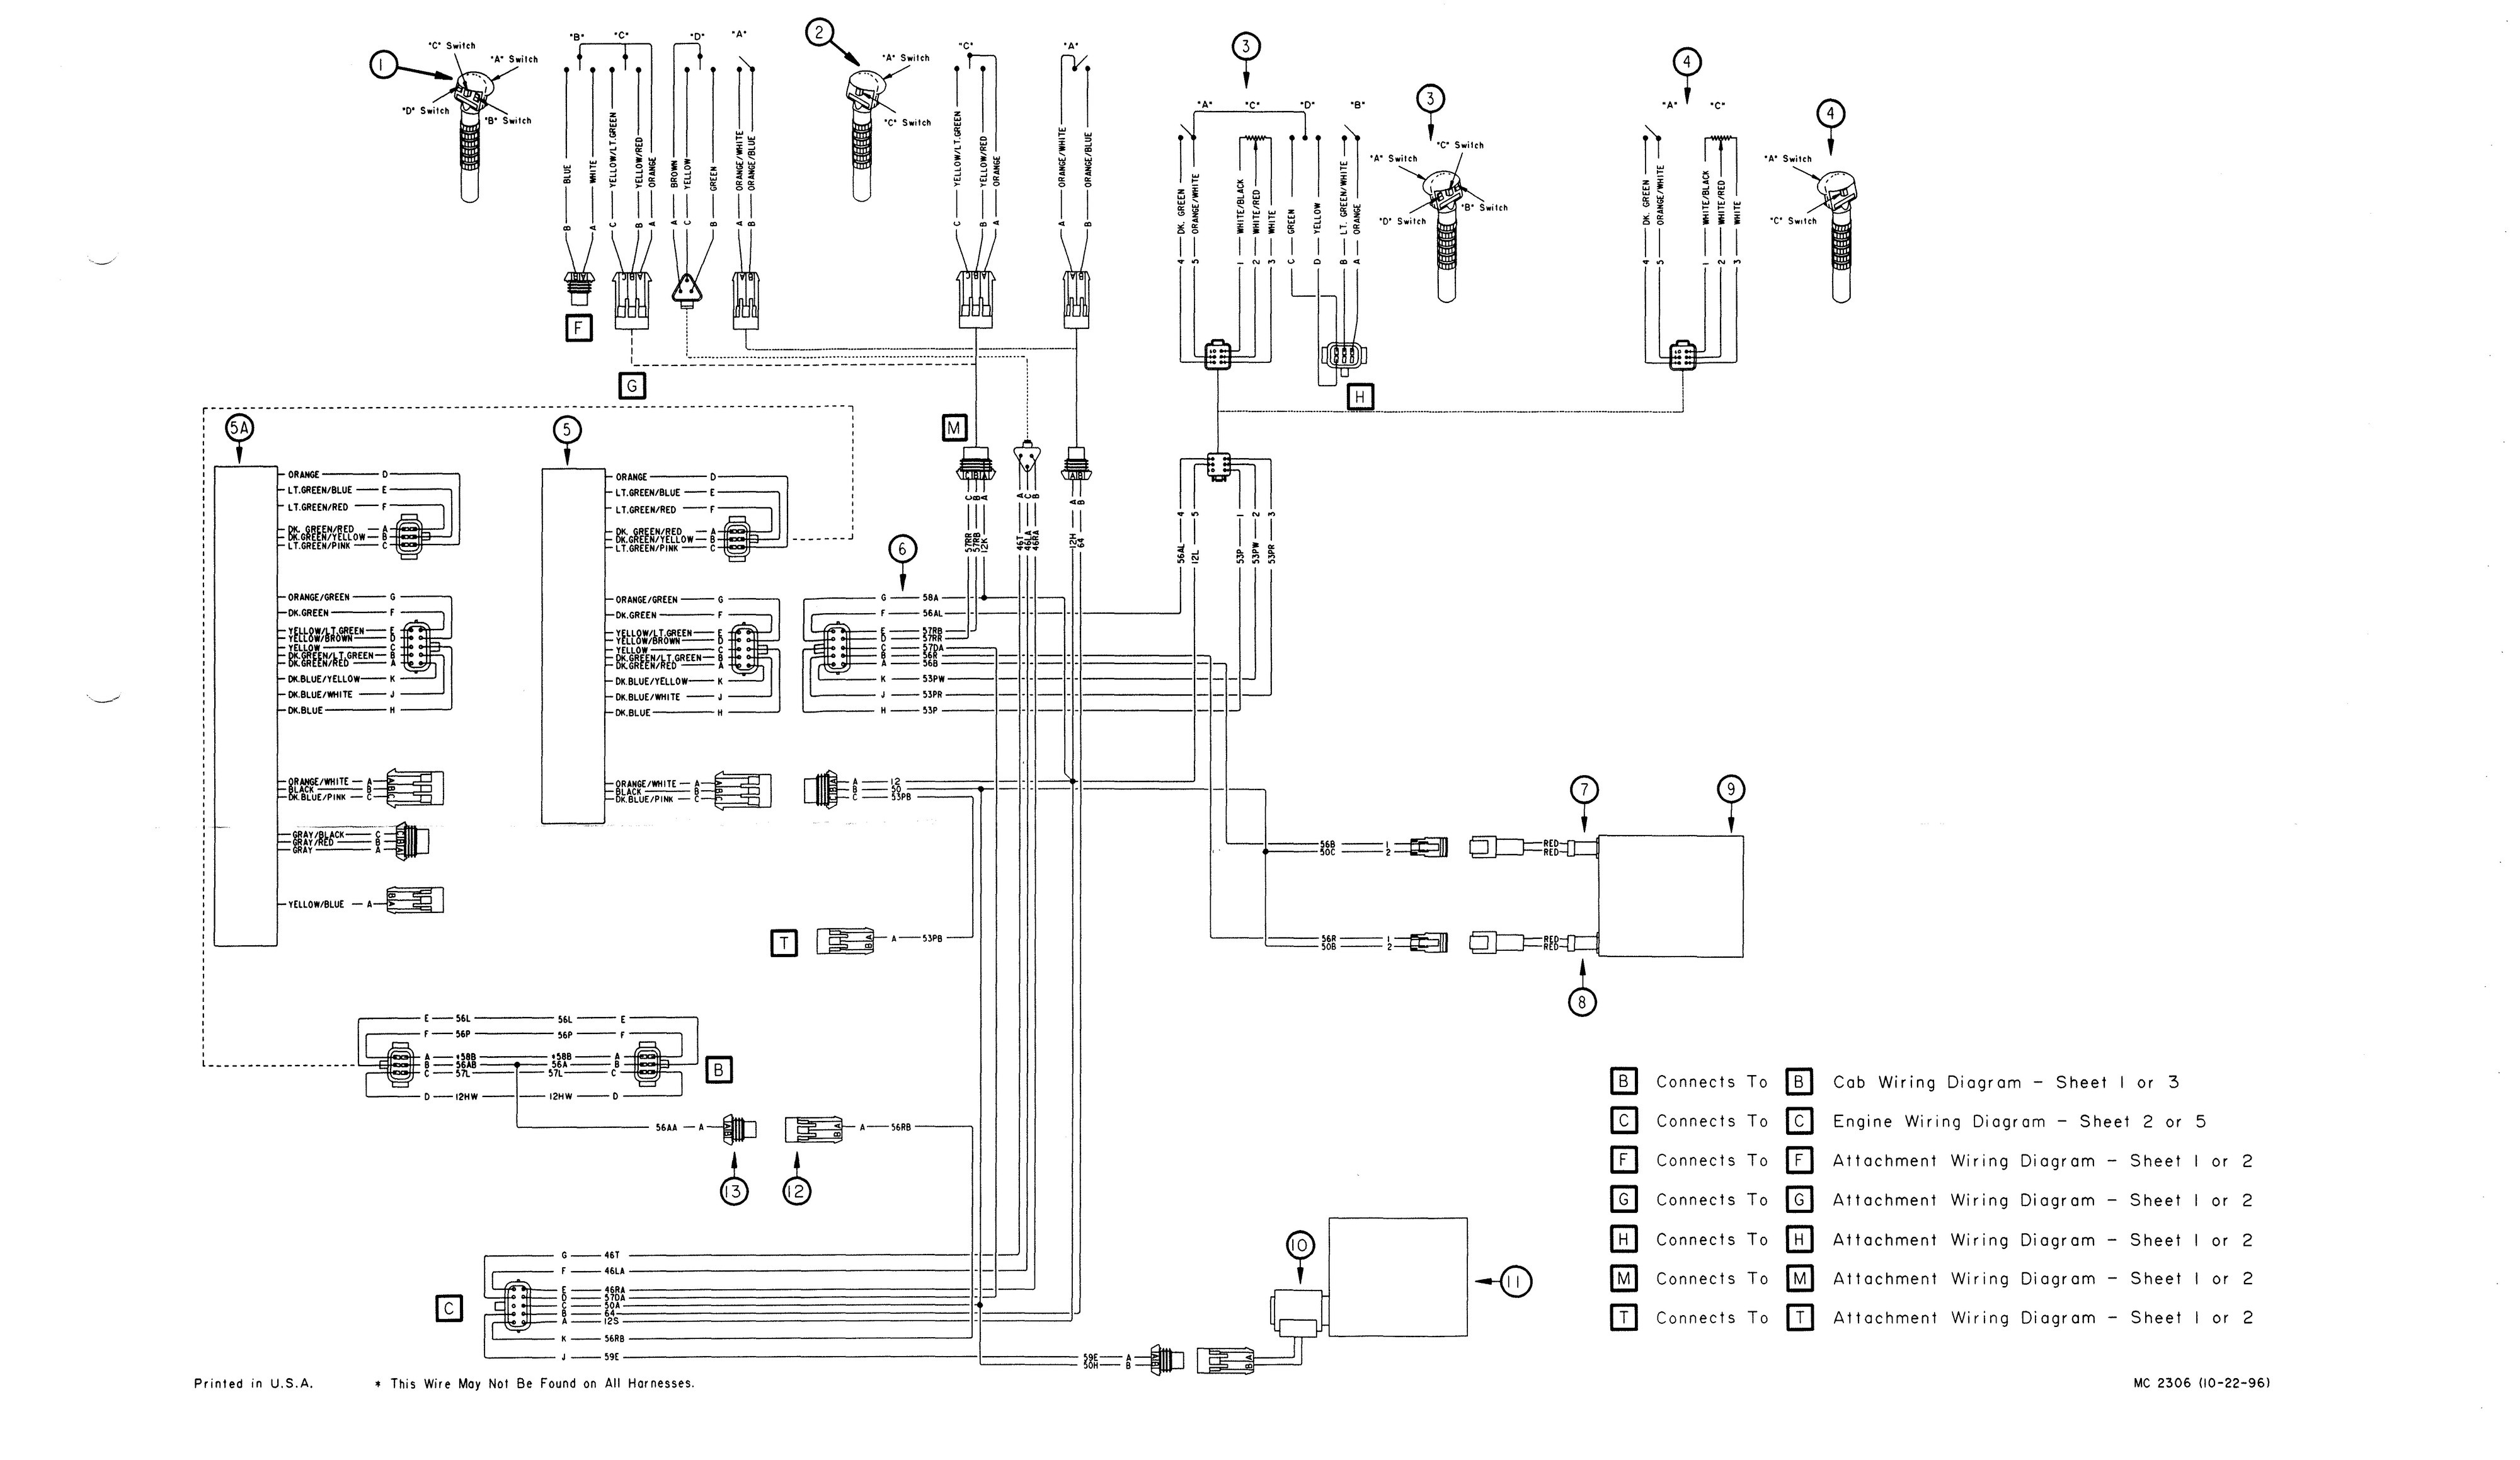 Wiring Scimatic 20001lincoln Ls Diagram] Bobcat S250 Wire Diagram Full Version Hd Quality Of Wiring Scimatic 20001lincoln Ls